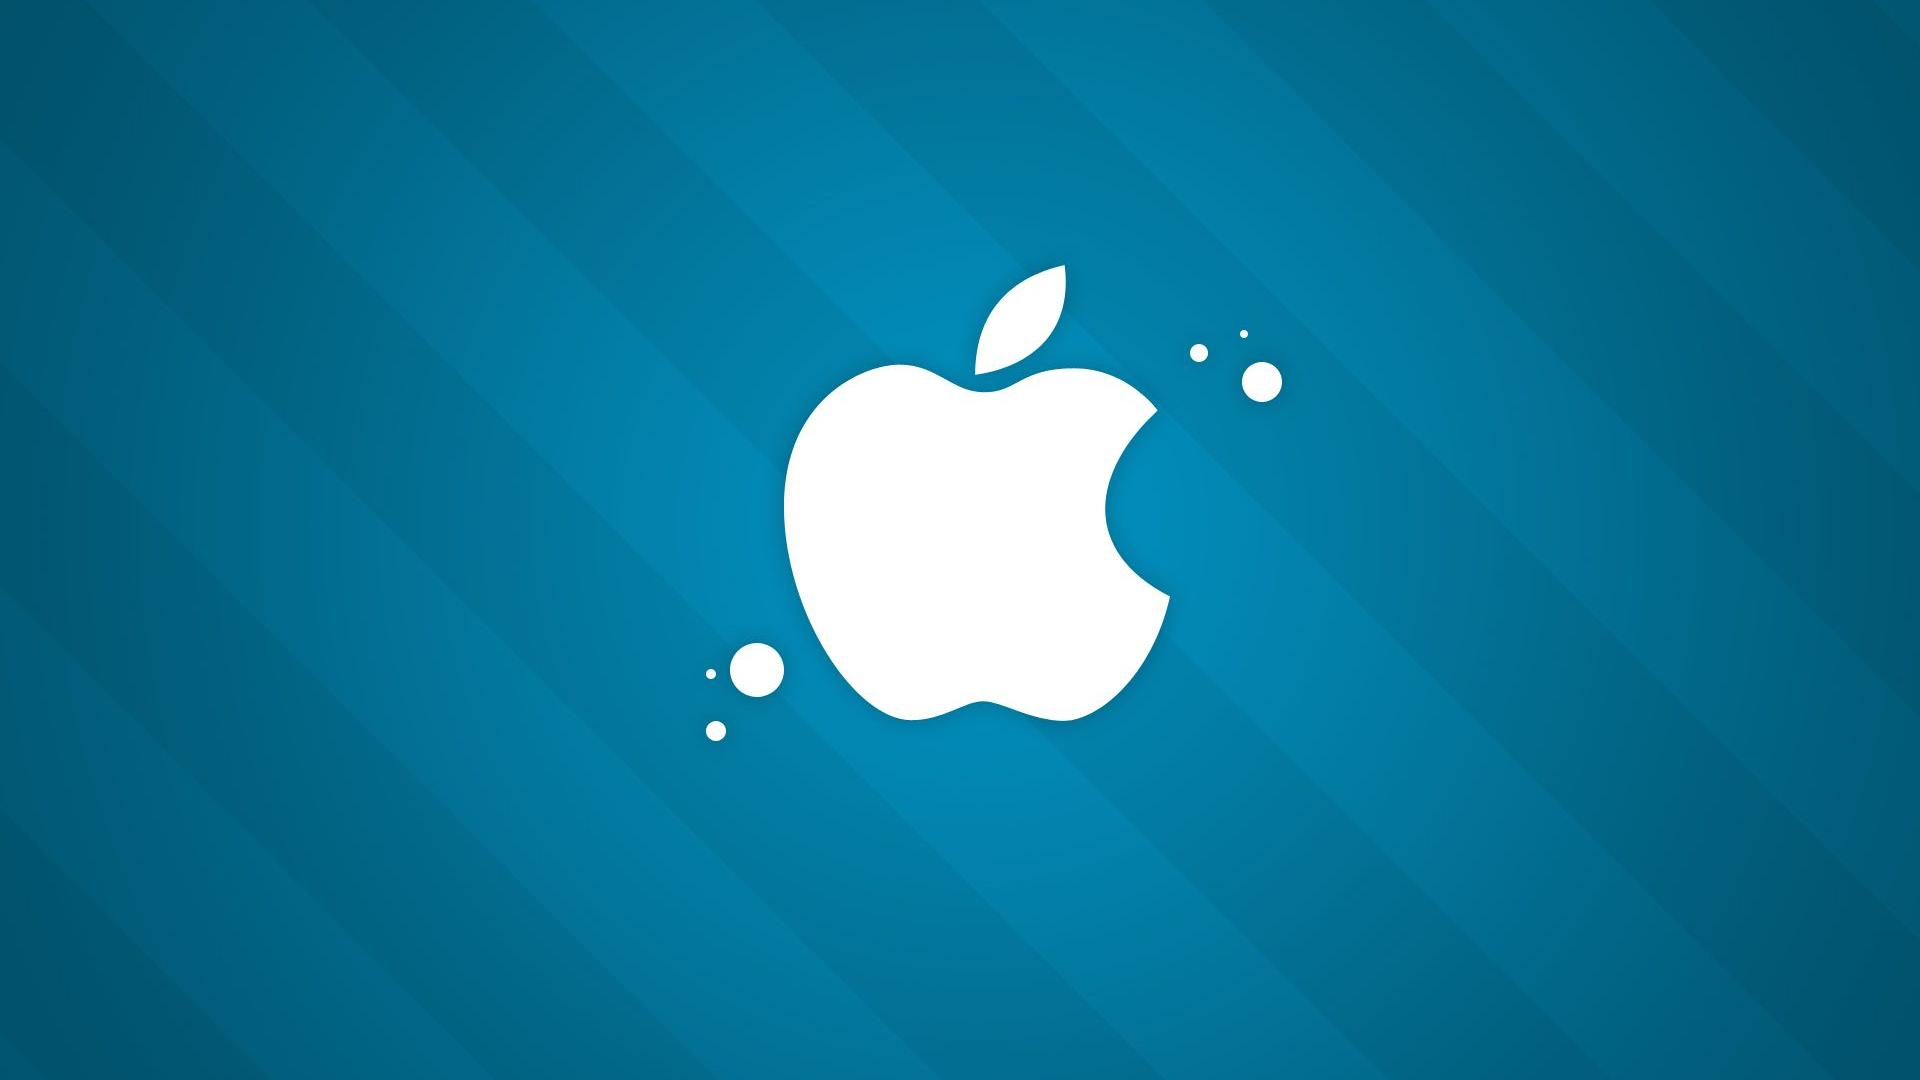 Hd Apple Logo Wallpapers and Background